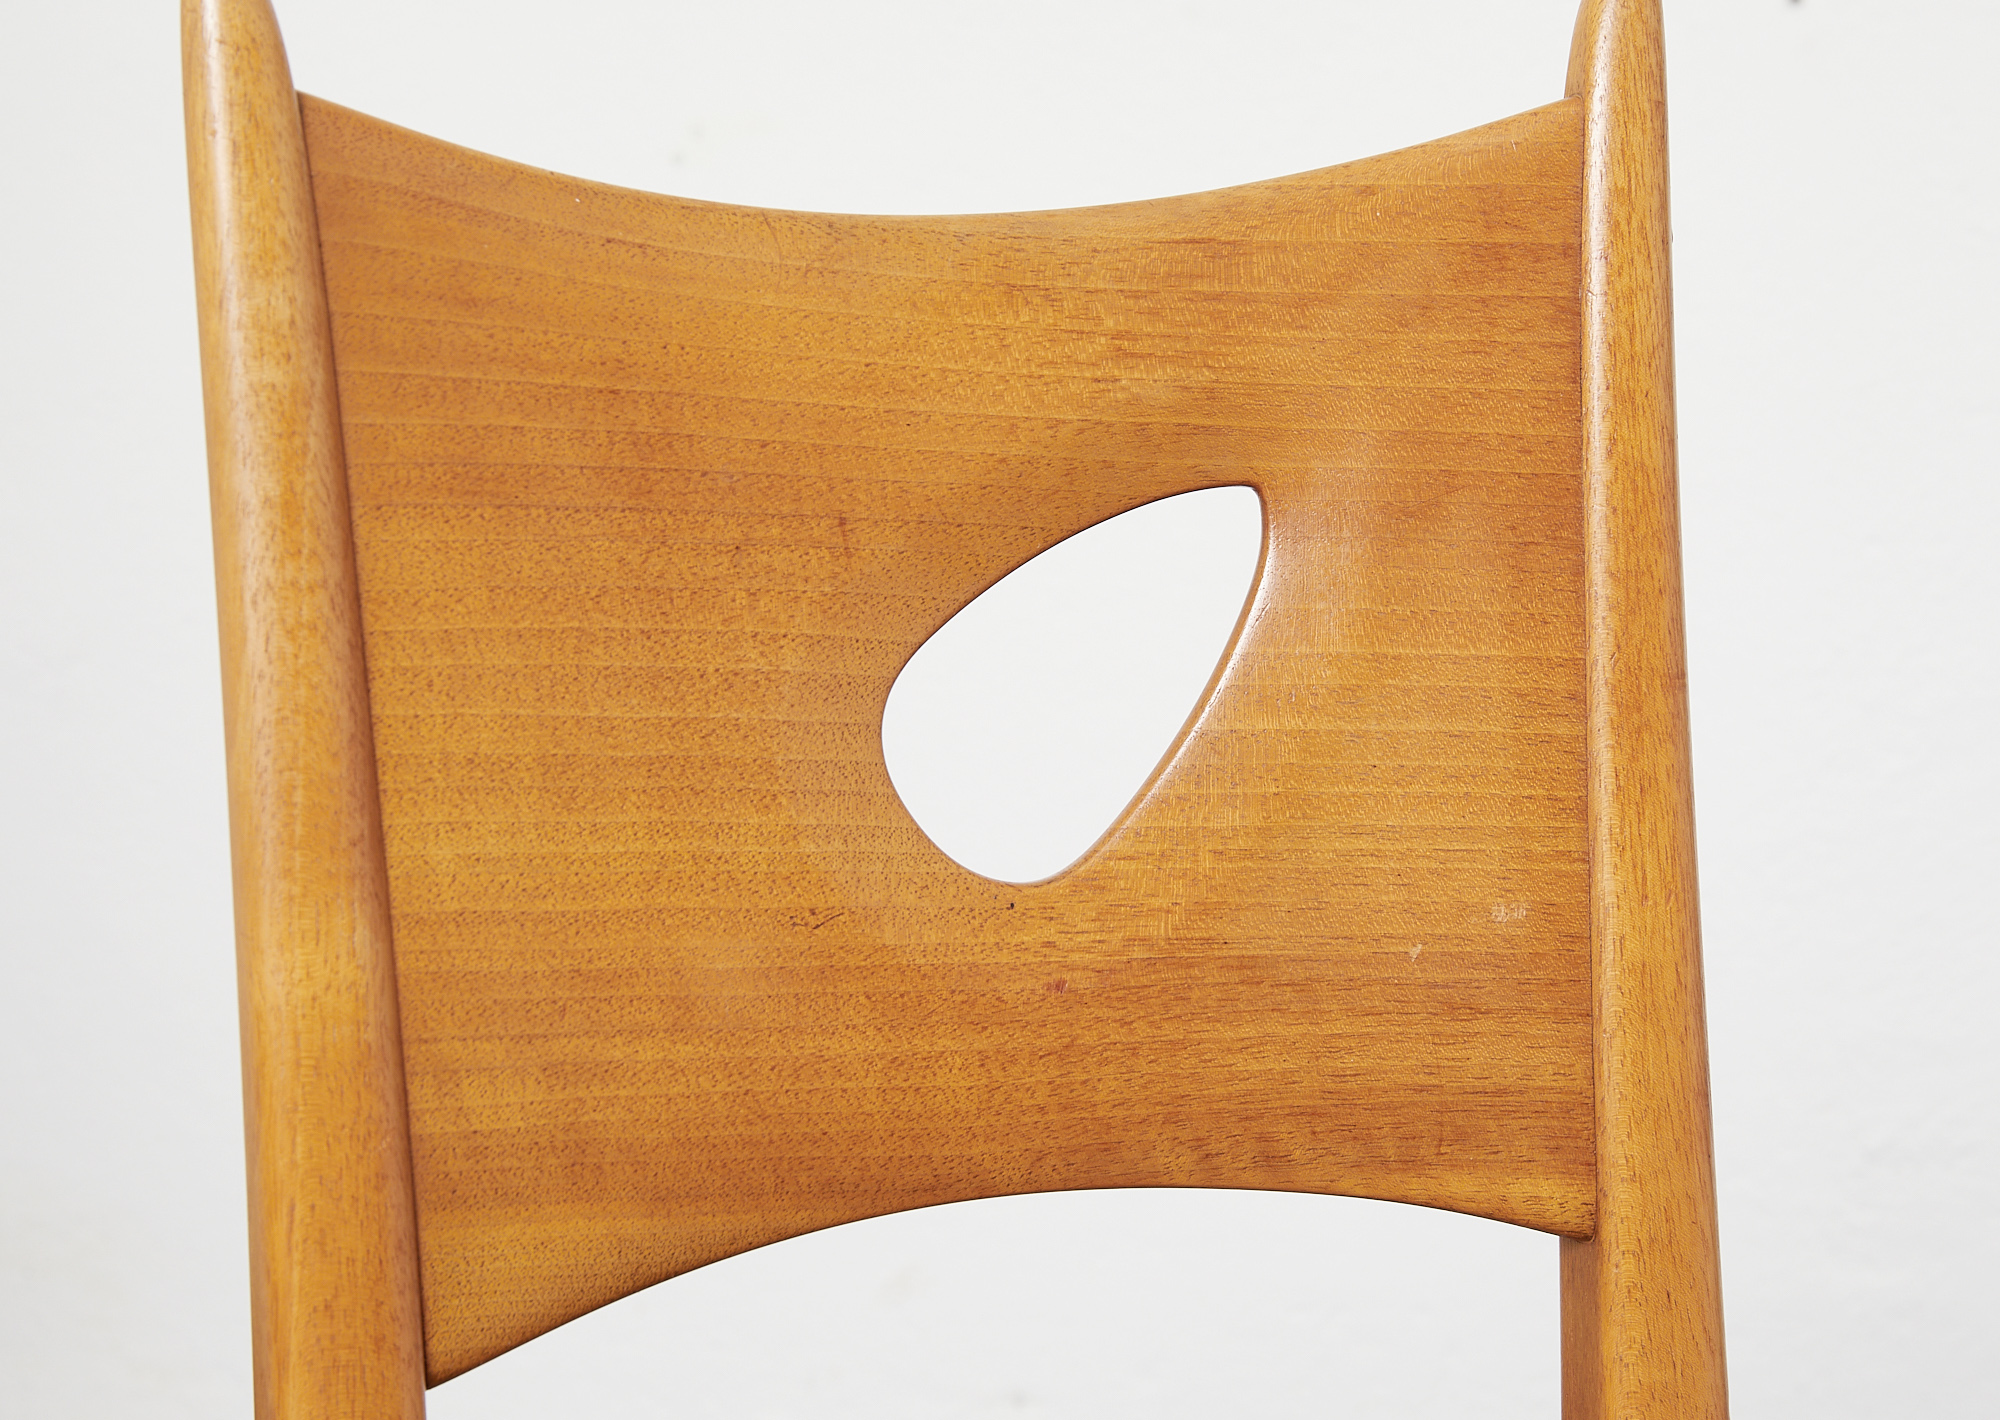 chaise-sculpturale-annees-50-image-05